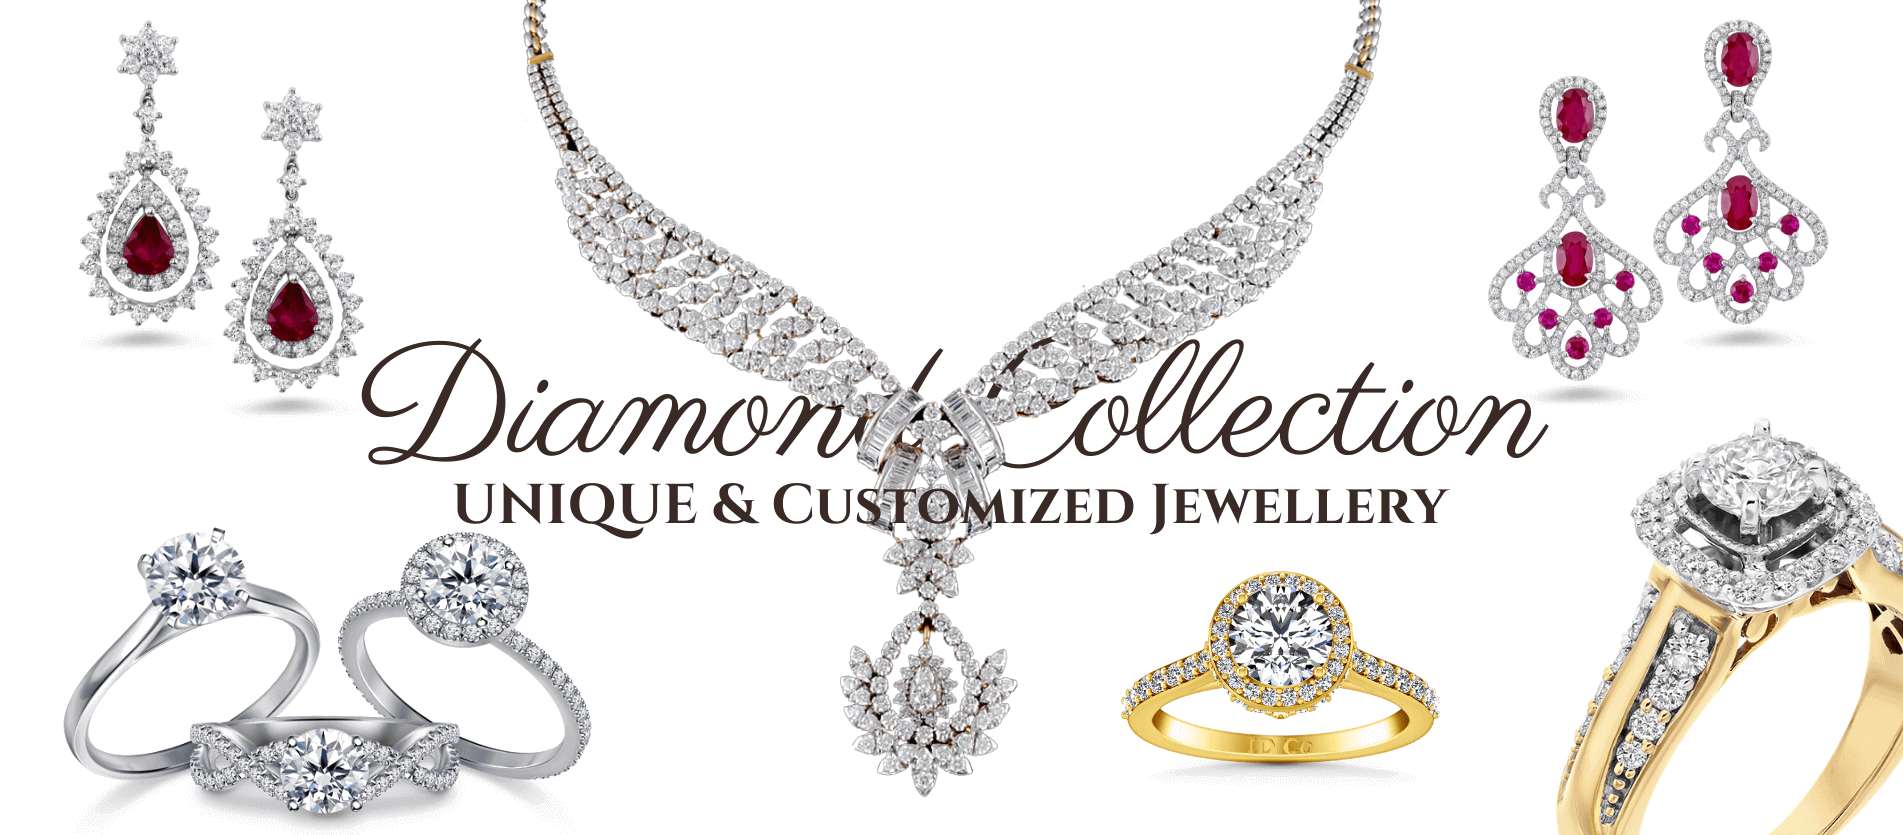 Diamond Jewellery Collection - হীরার গহণা - by Gems Jewellers & Gems Stone